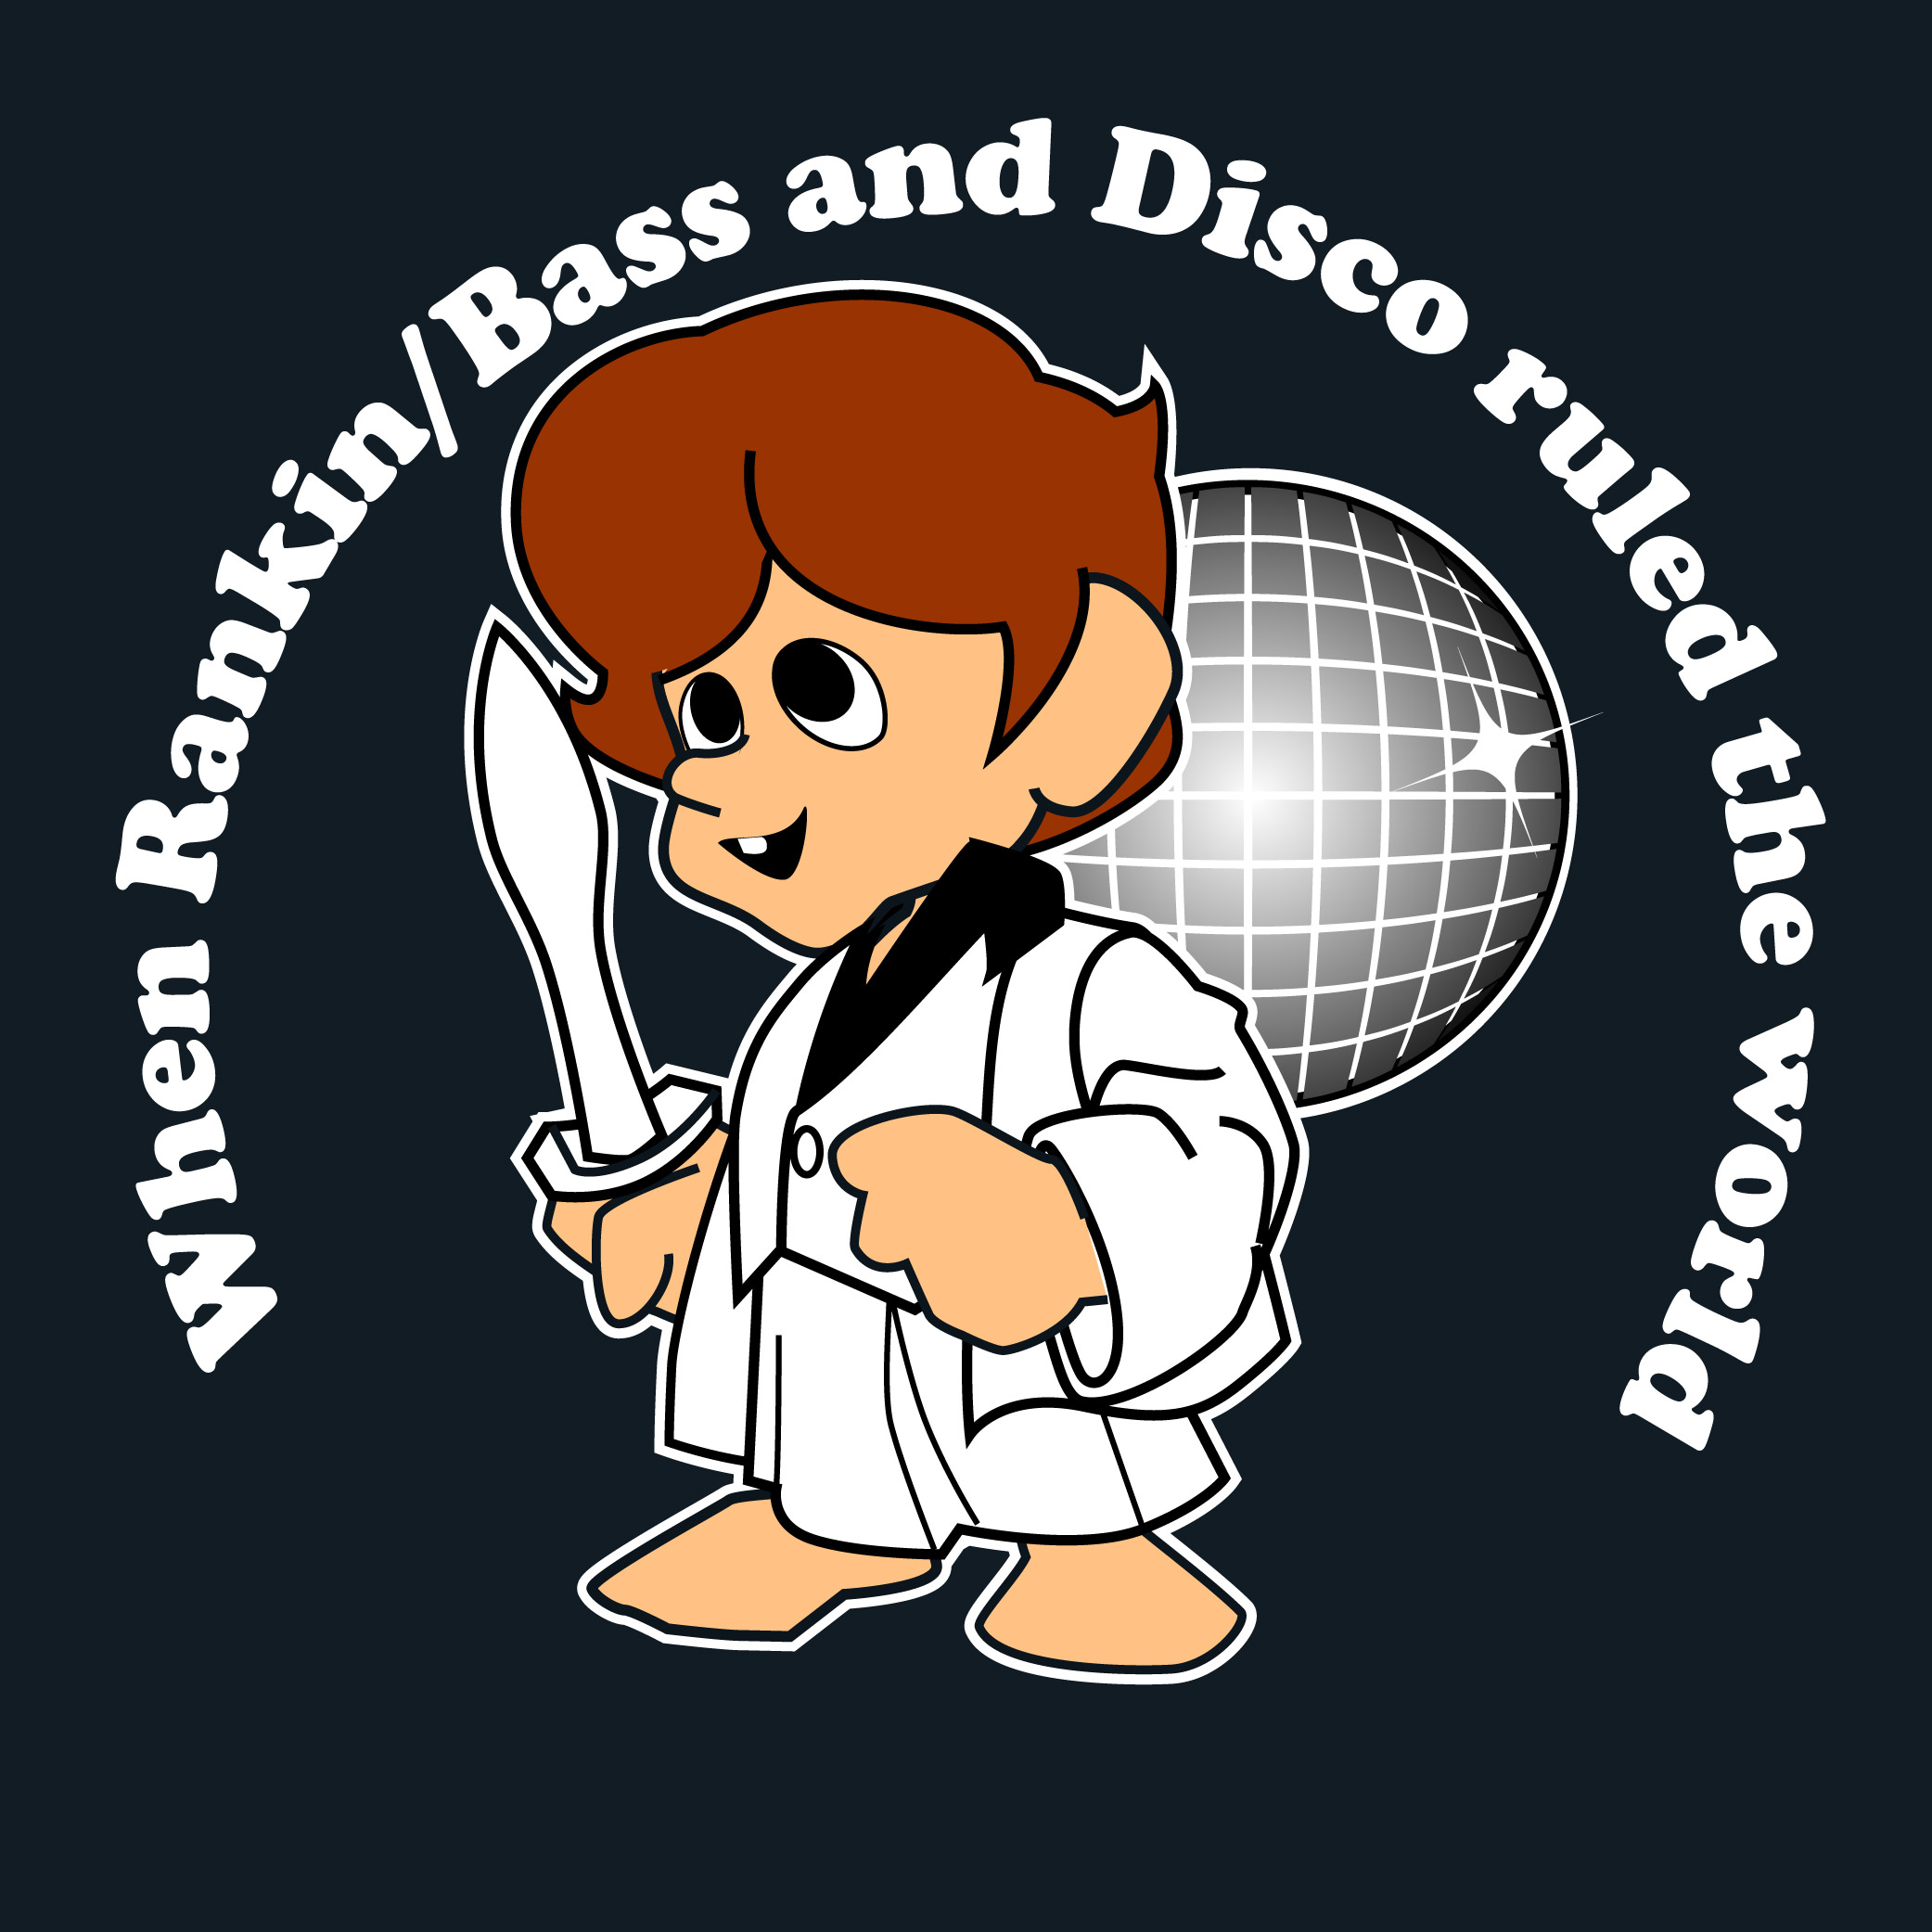 When Rankin/Bass and disco ruled the world